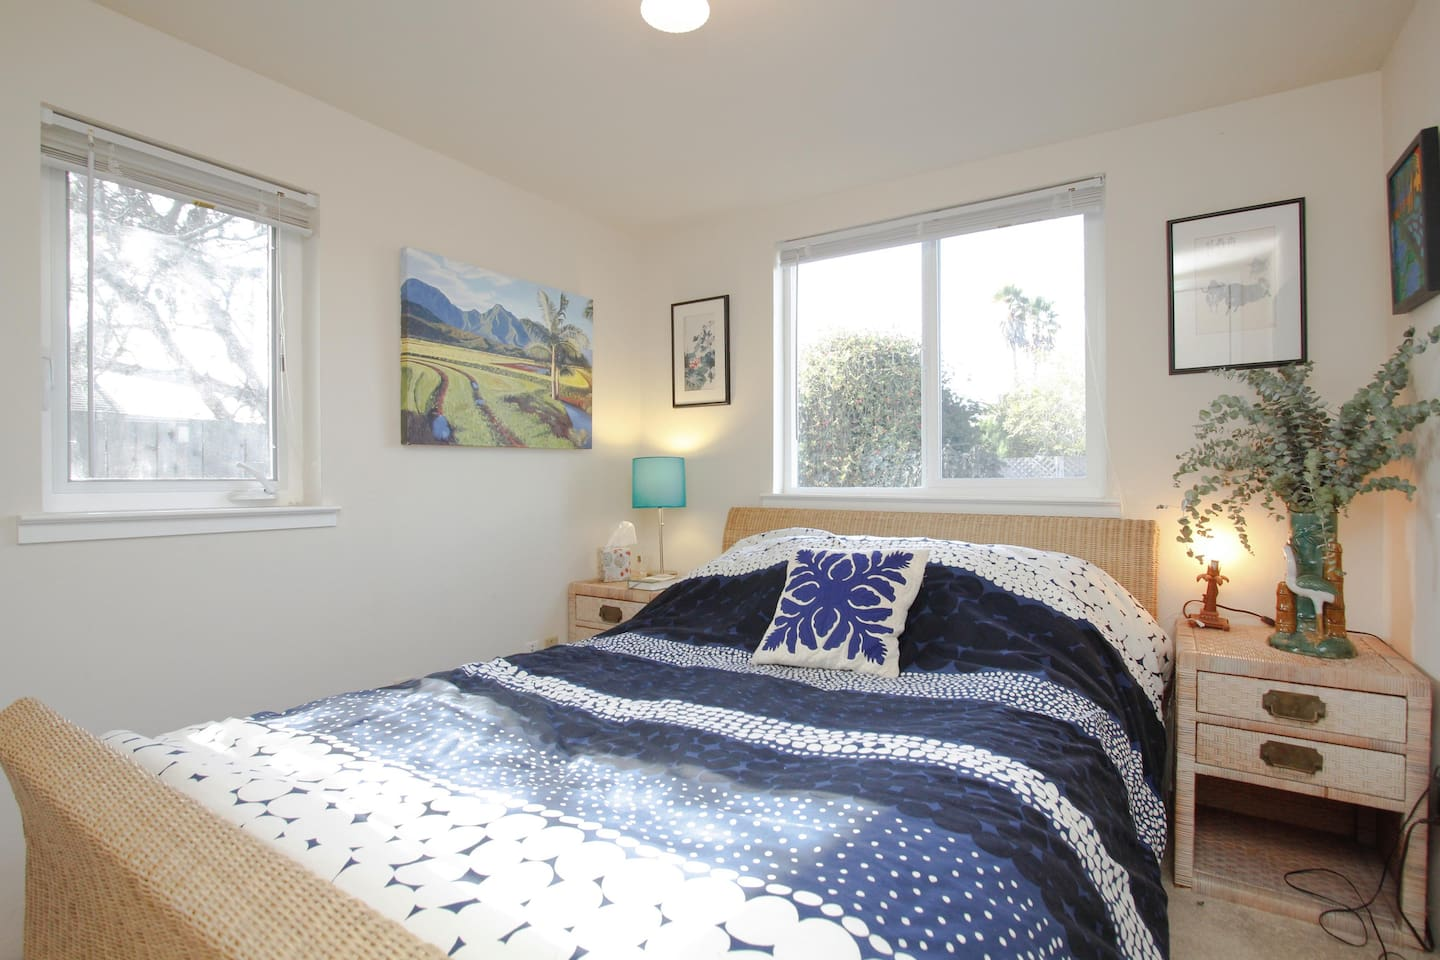 Front Bedroom - double bed with a featherbed on top, very comfy!